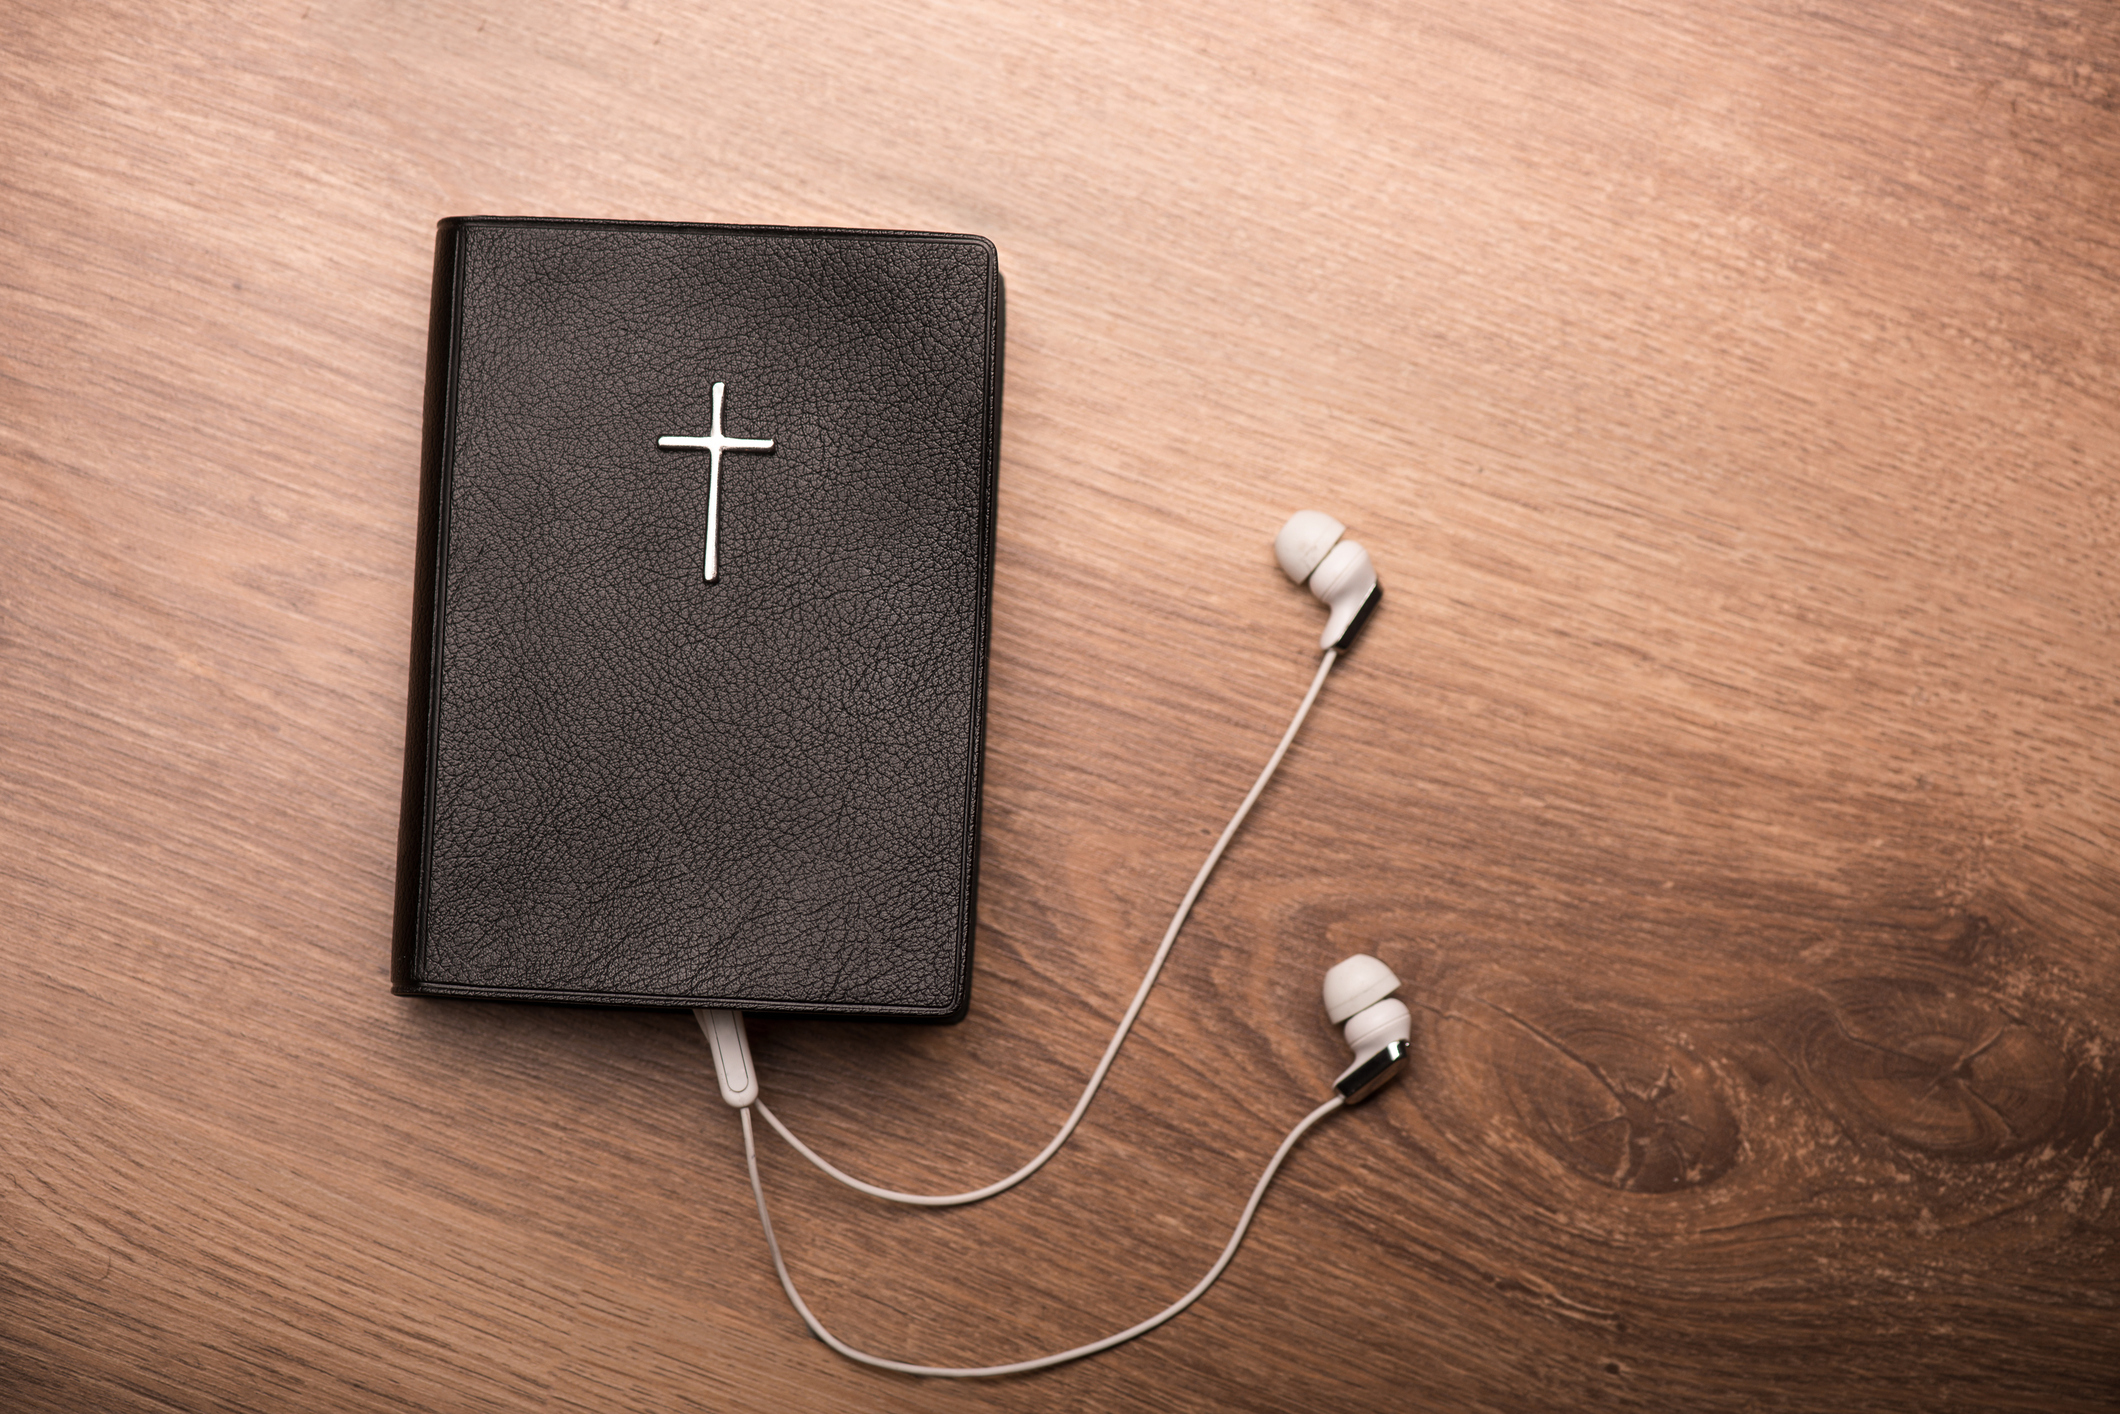 SeRmons - Download and listen to a recent sermon taught from the word of God.